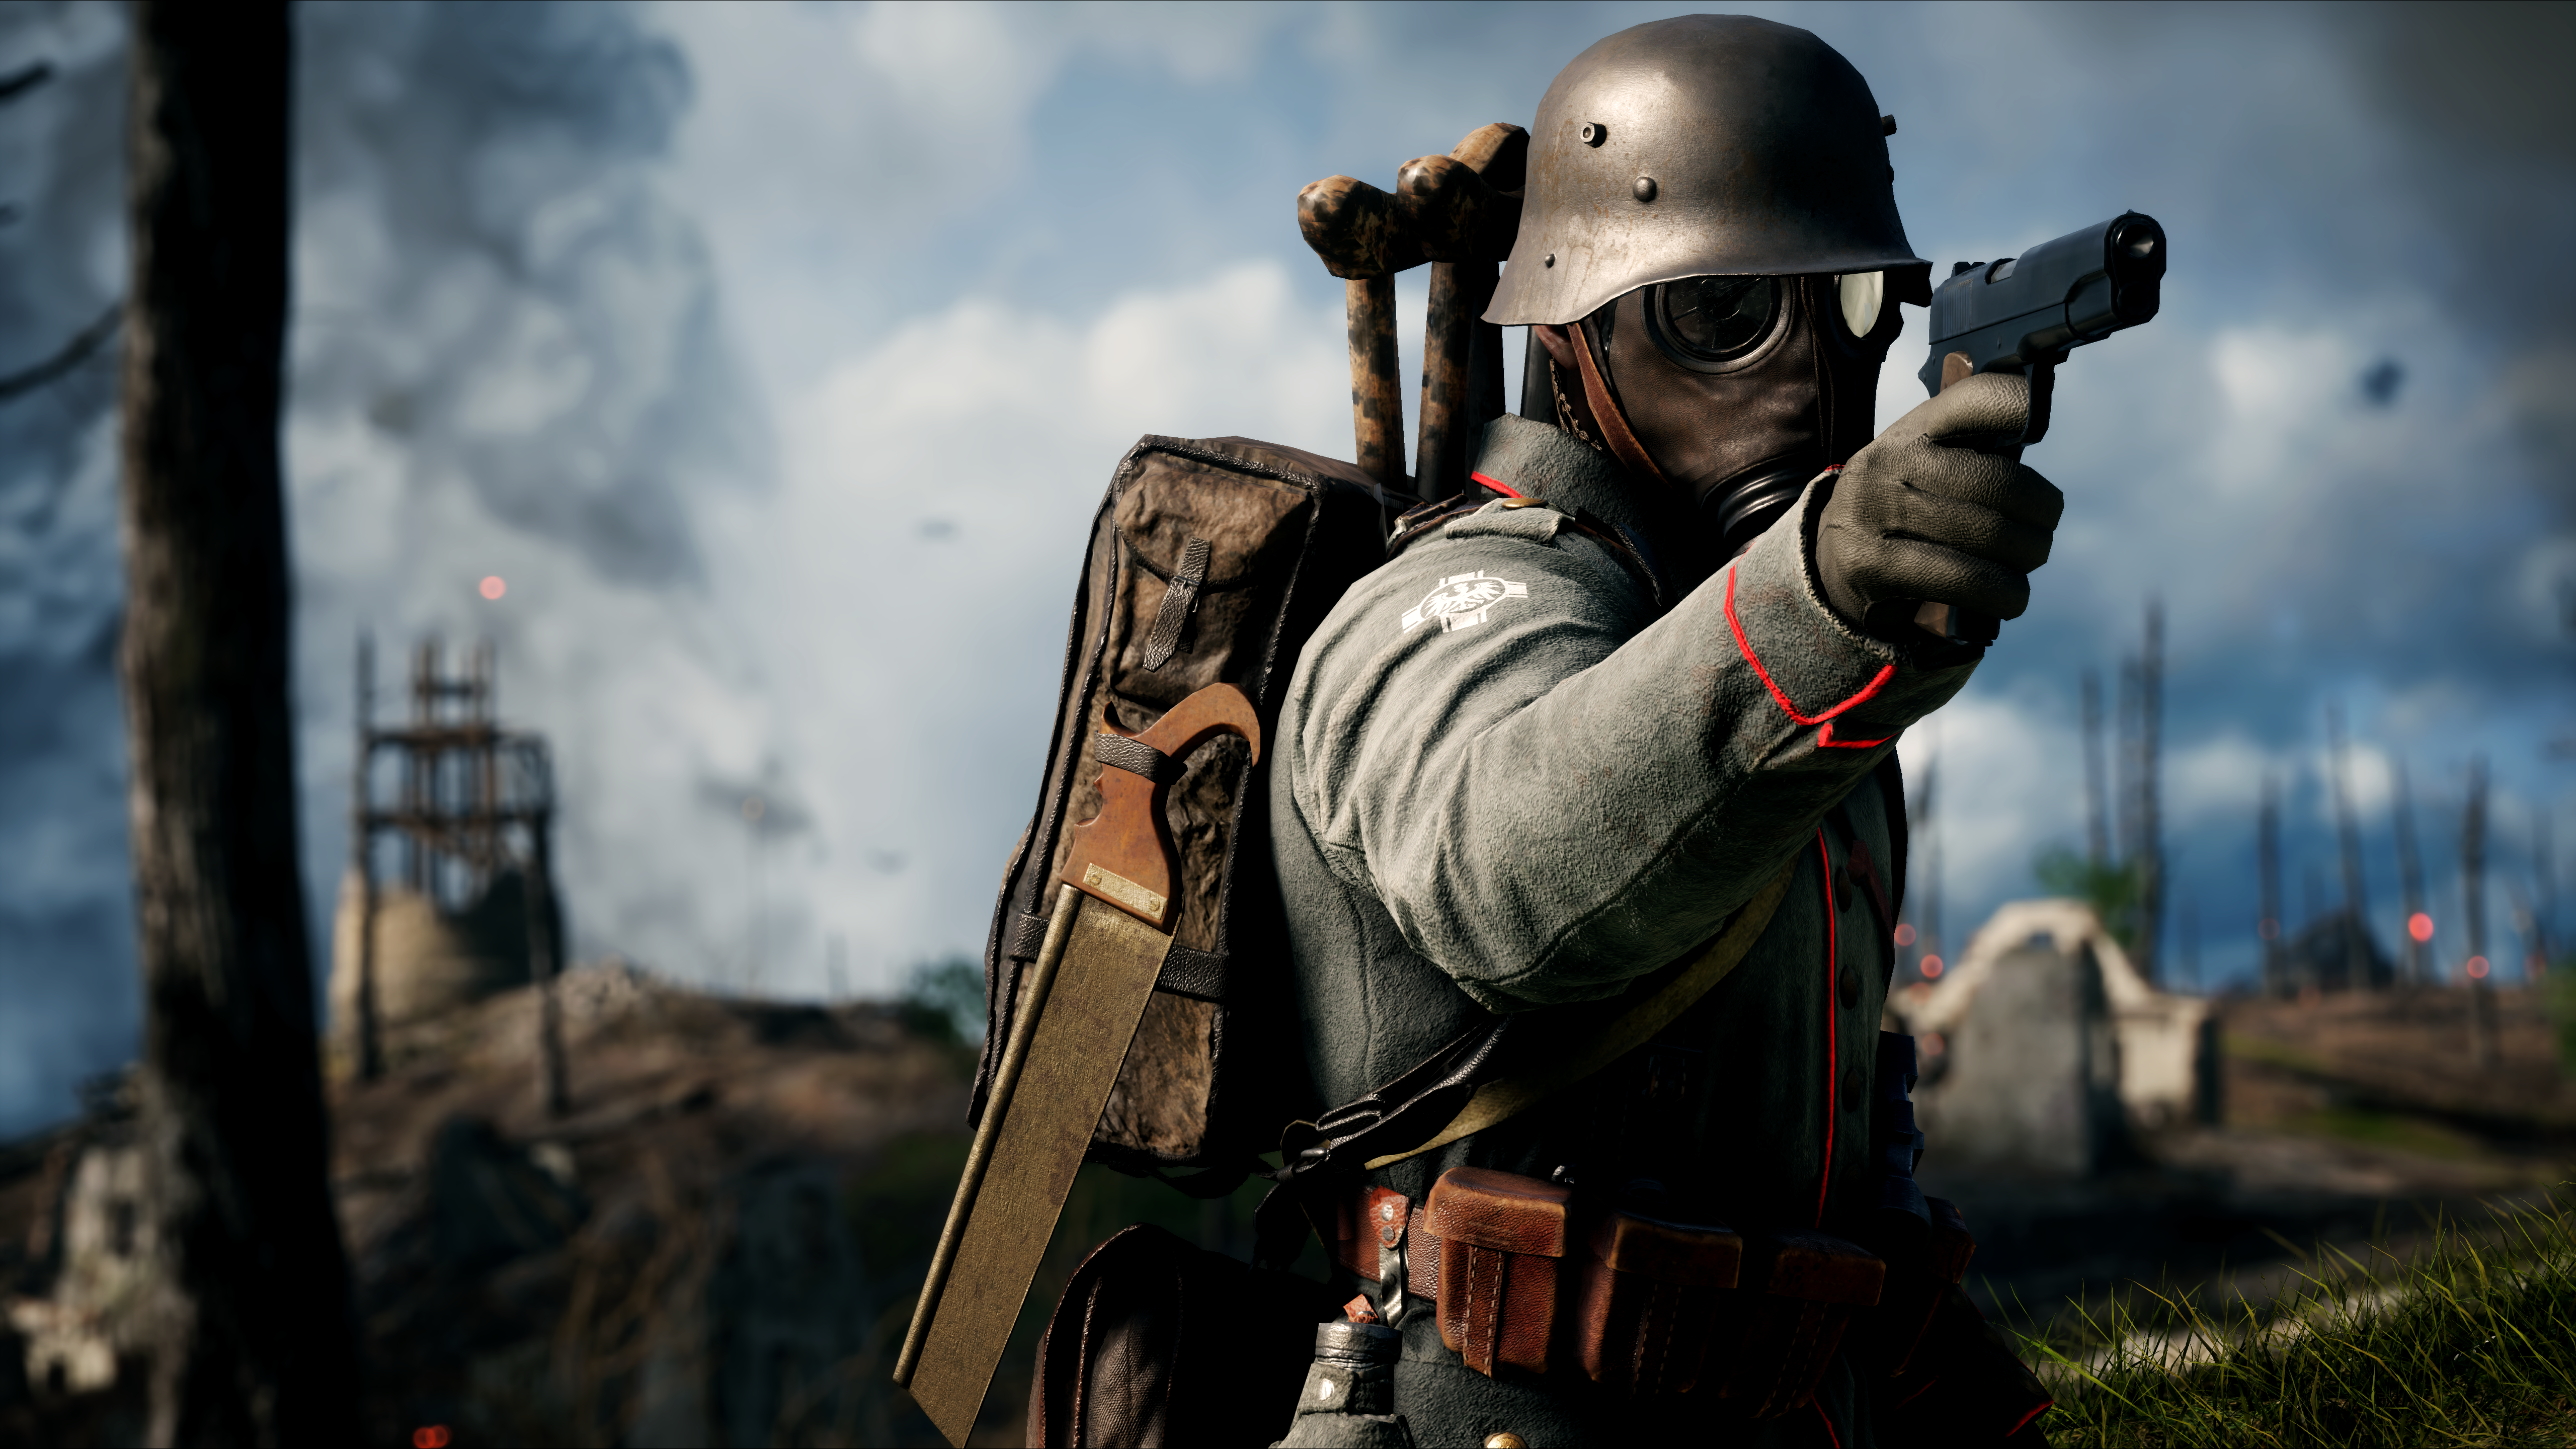 Battlefield 1 clipart picture freeuse library Battlefield 1 clipart 4k - ClipartFest picture freeuse library